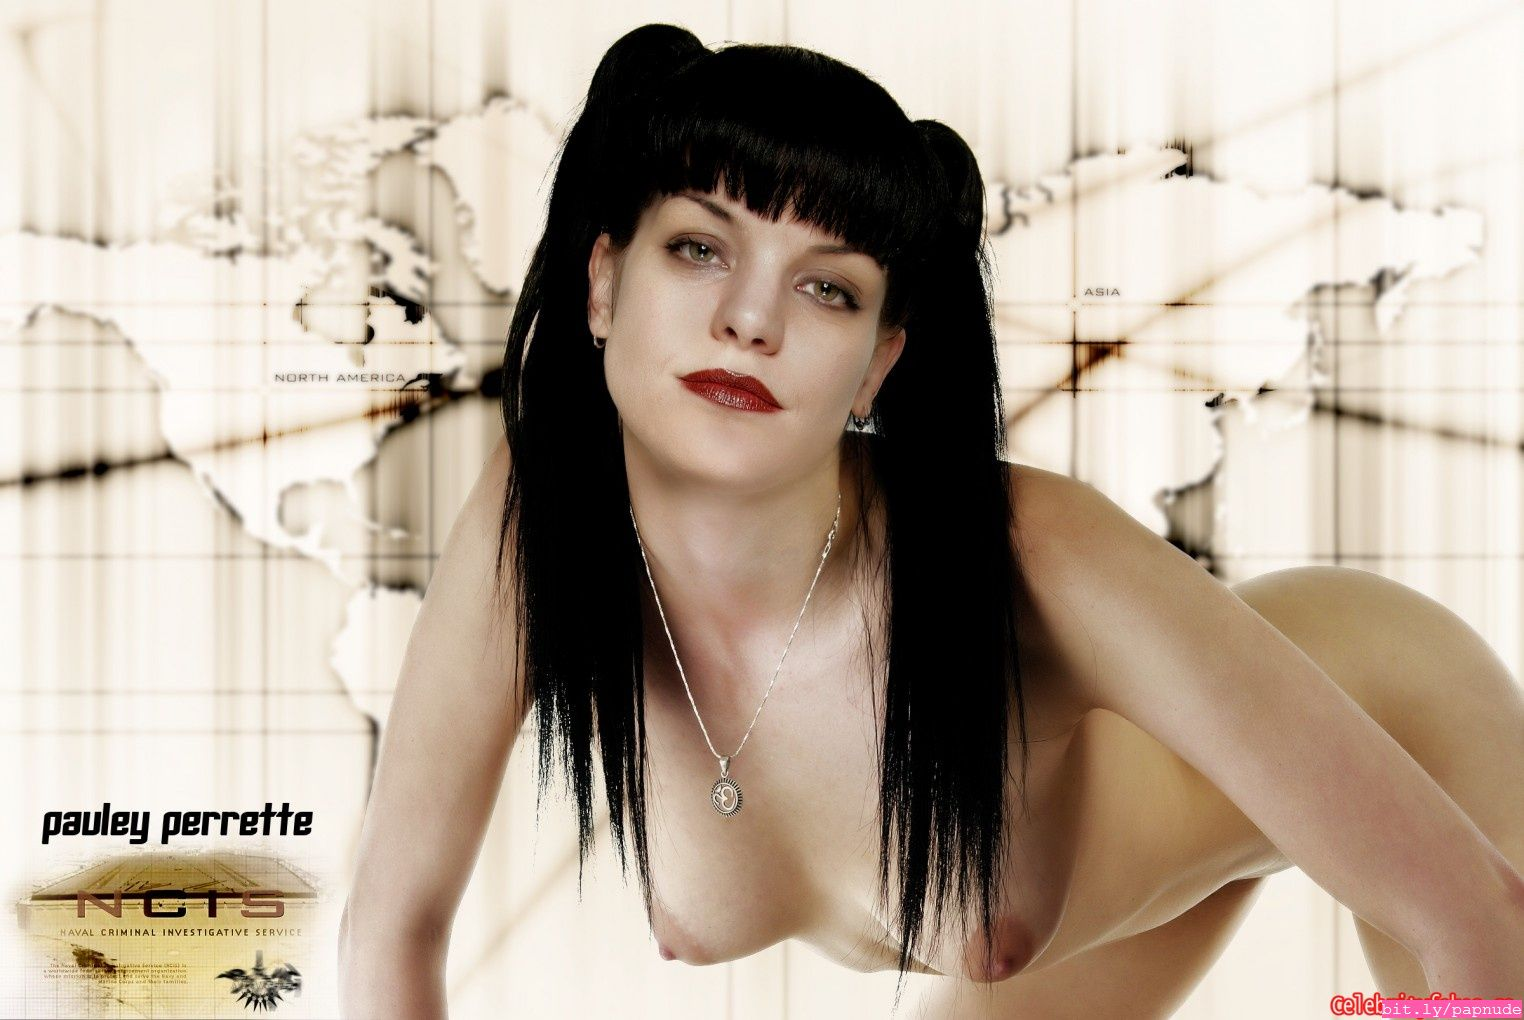 Not Nude fakes pauley perrette